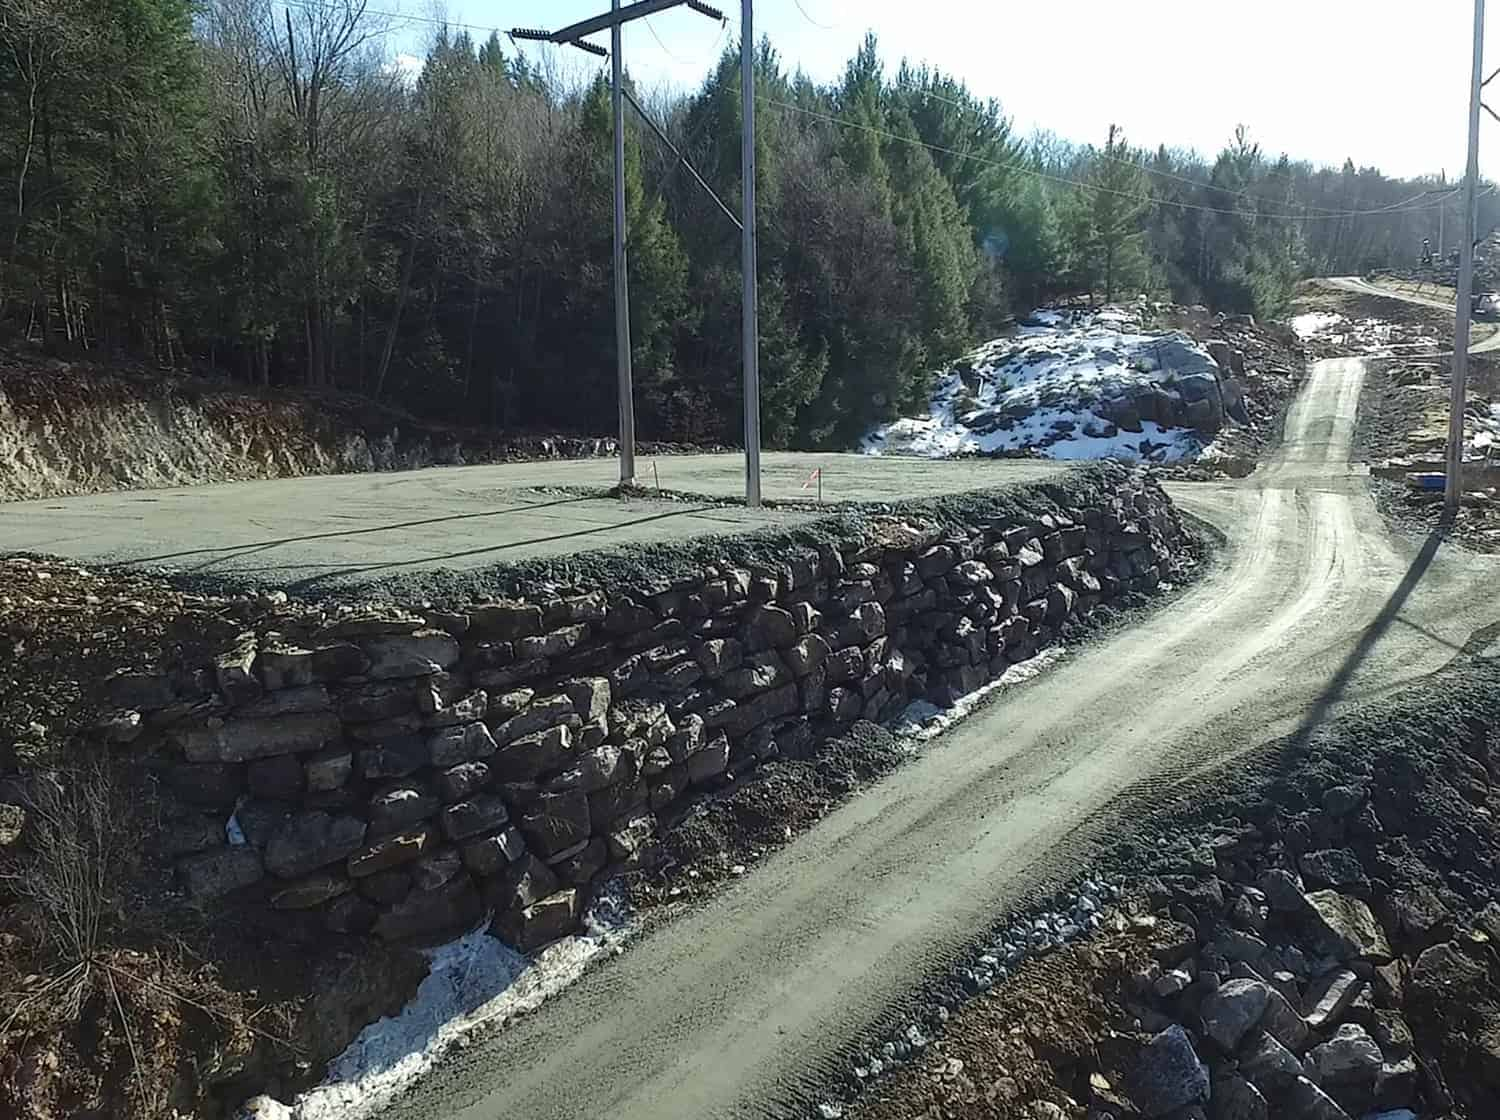 BLUROC builds temporary and permanent access roads